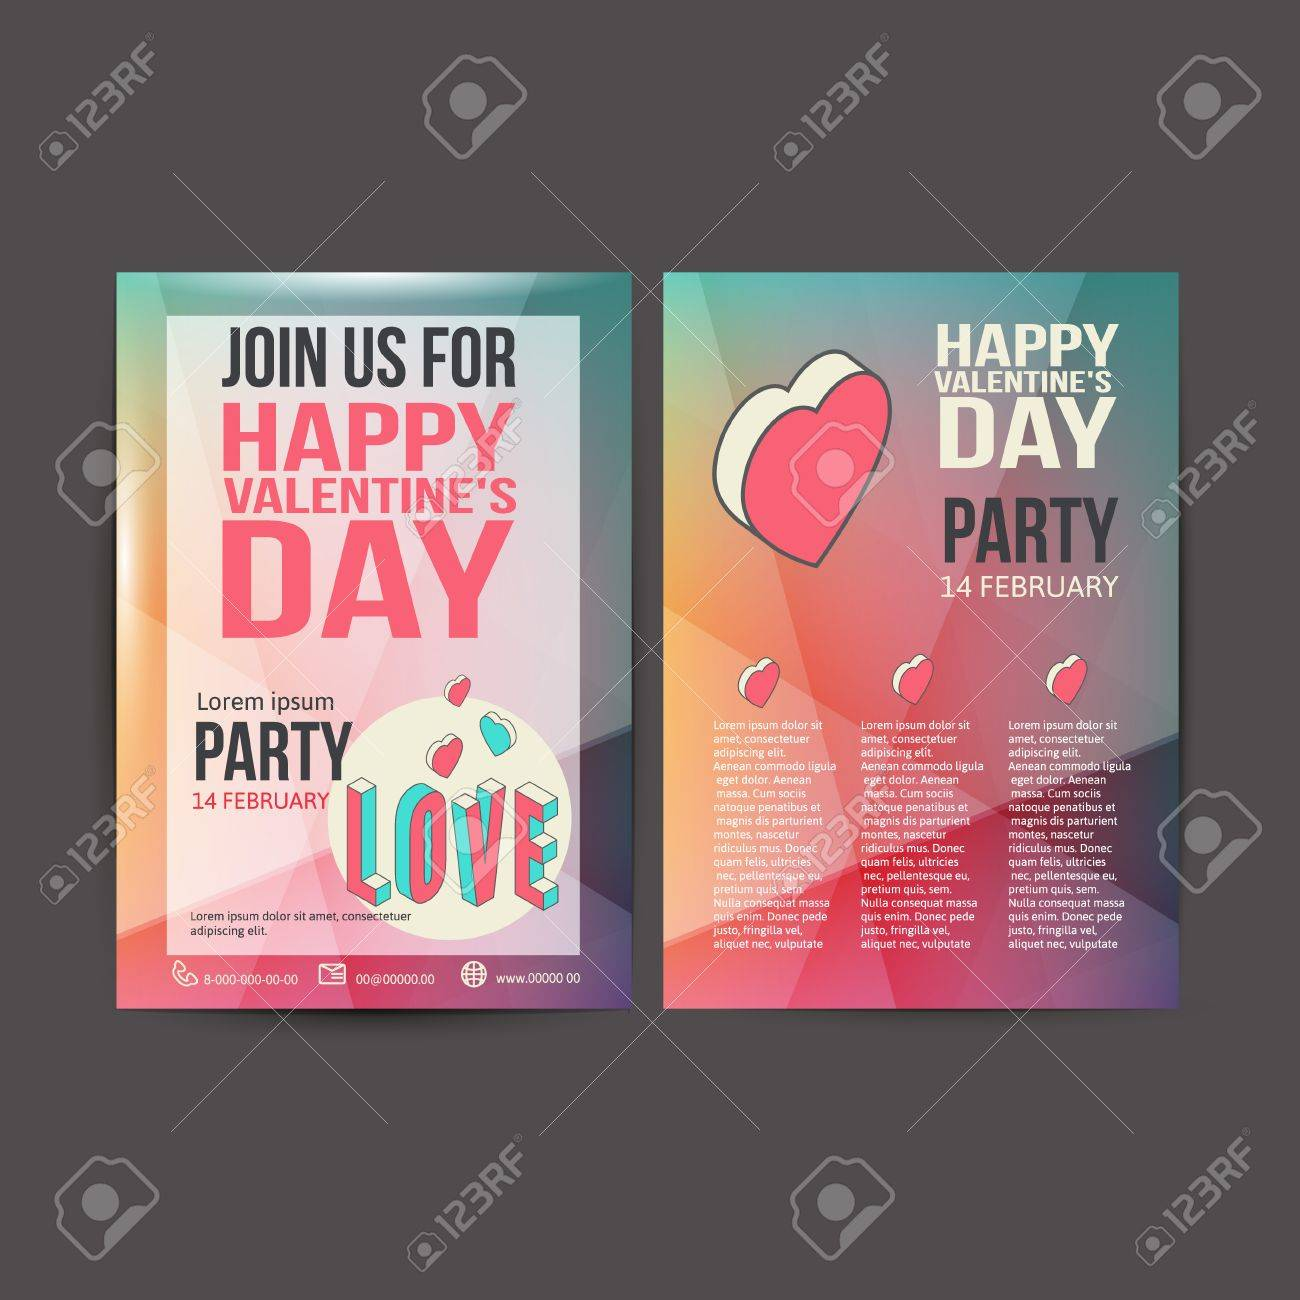 happy valentines day party poster design template typography happy valentines day party poster design template typography flyer invitation vector illustration stock vector